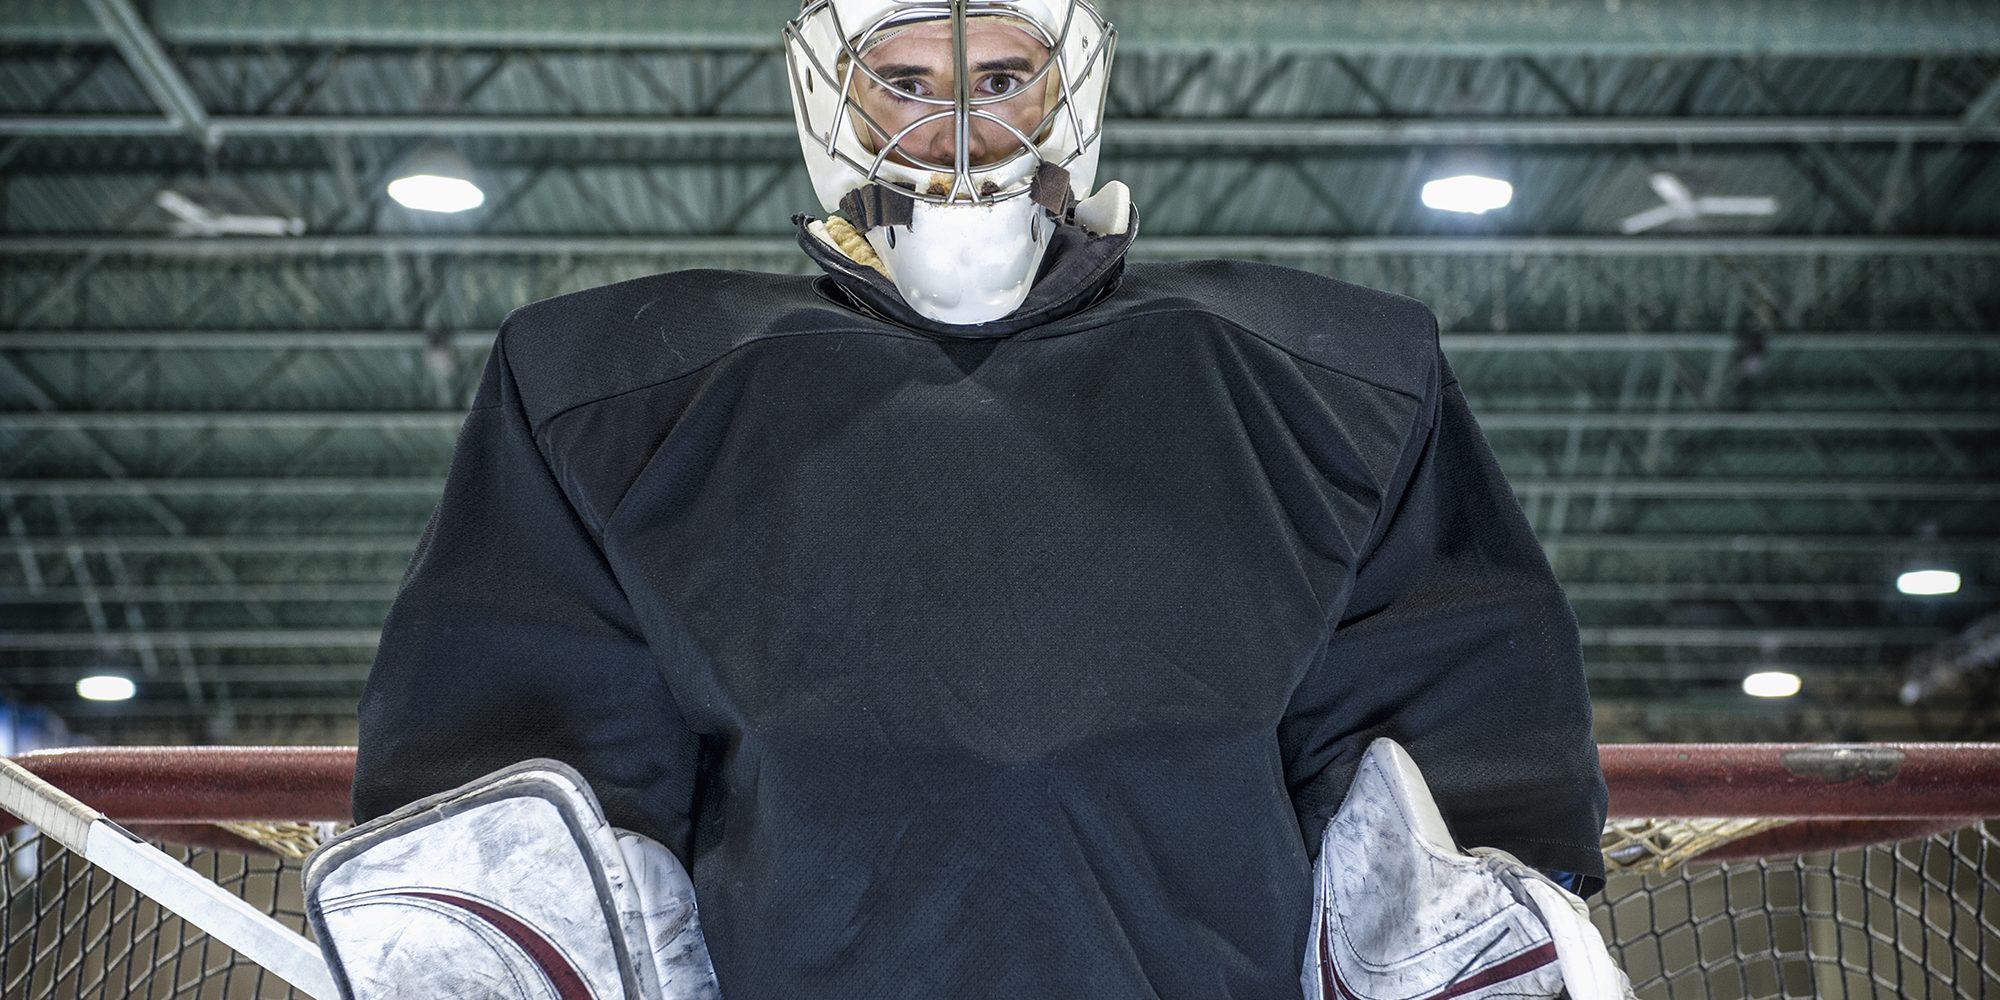 Hockey goalie standing near net